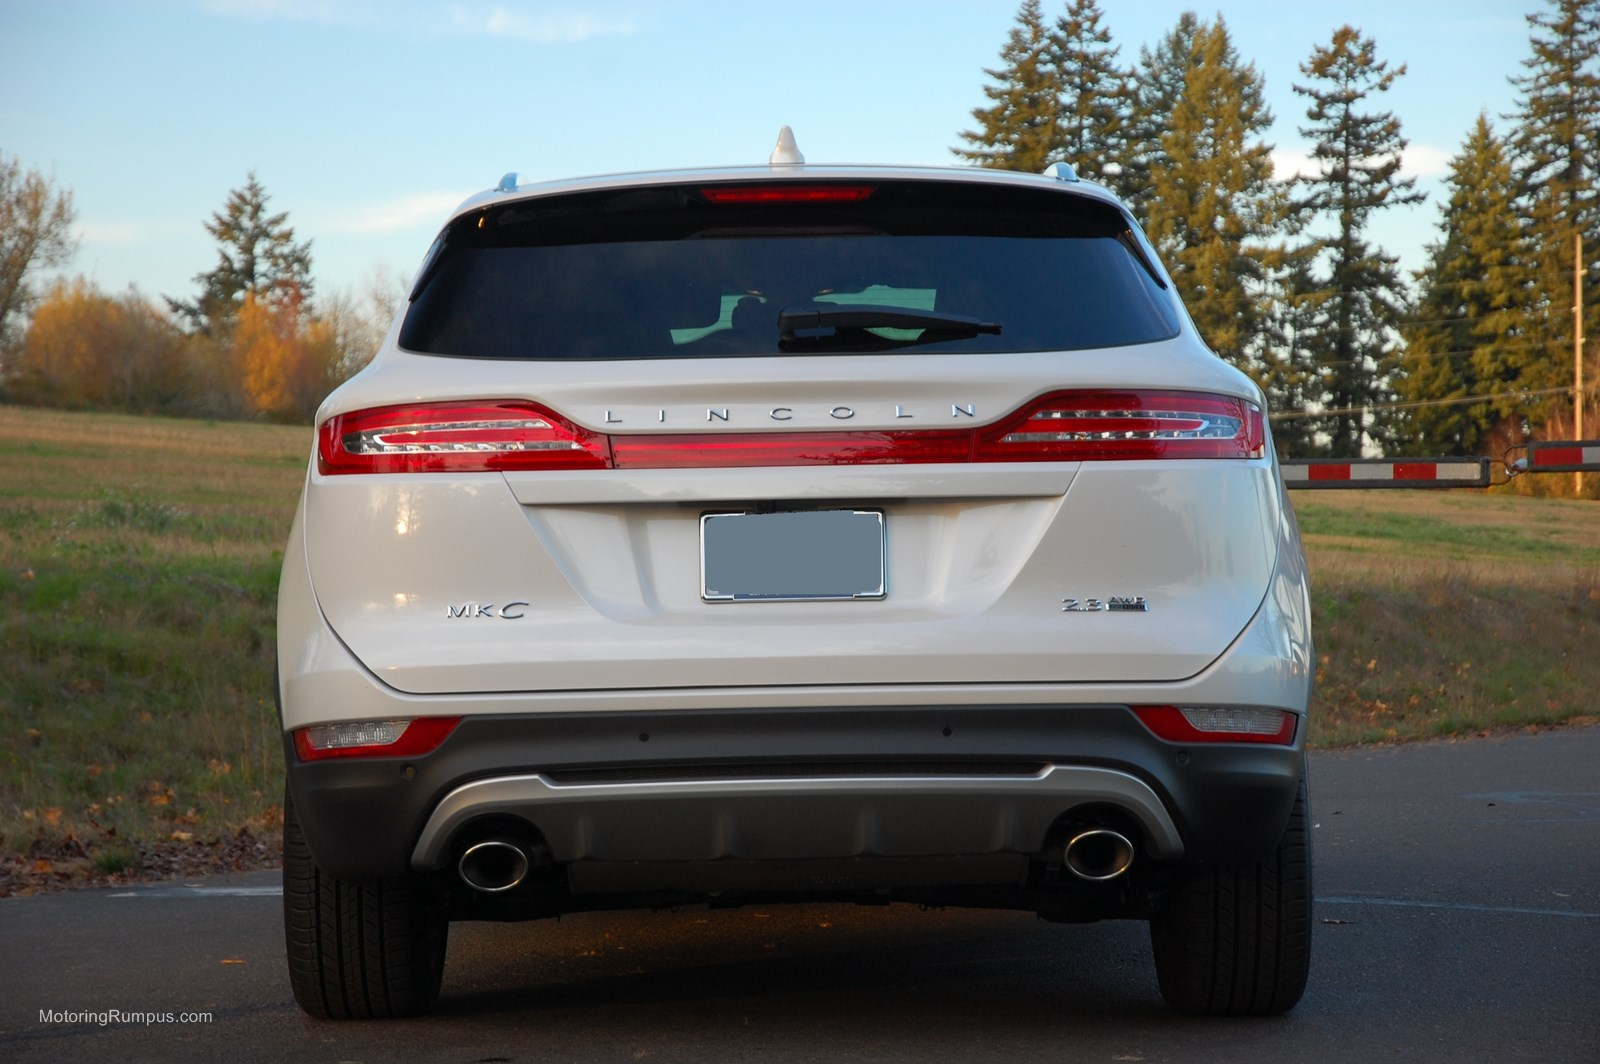 White Ford Escape >> 2015 Lincoln MKC Review - Motoring Rumpus